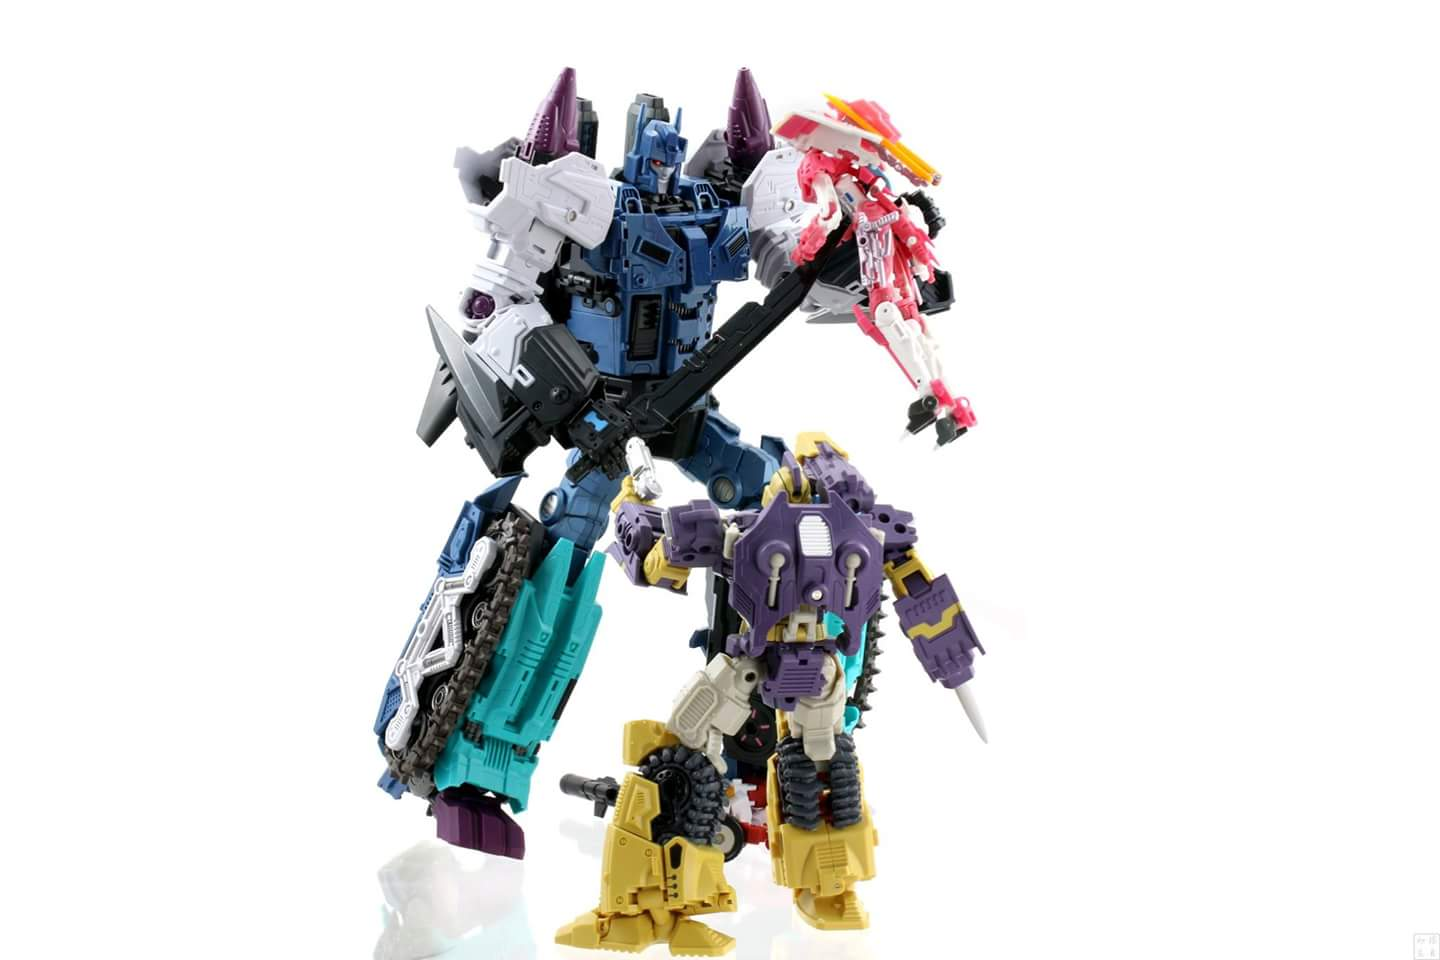 [Mastermind Creations] Produit Tiers - R-17 Carnifex - aka Overlord (TF Masterforce) - Page 3 GDiGYguO